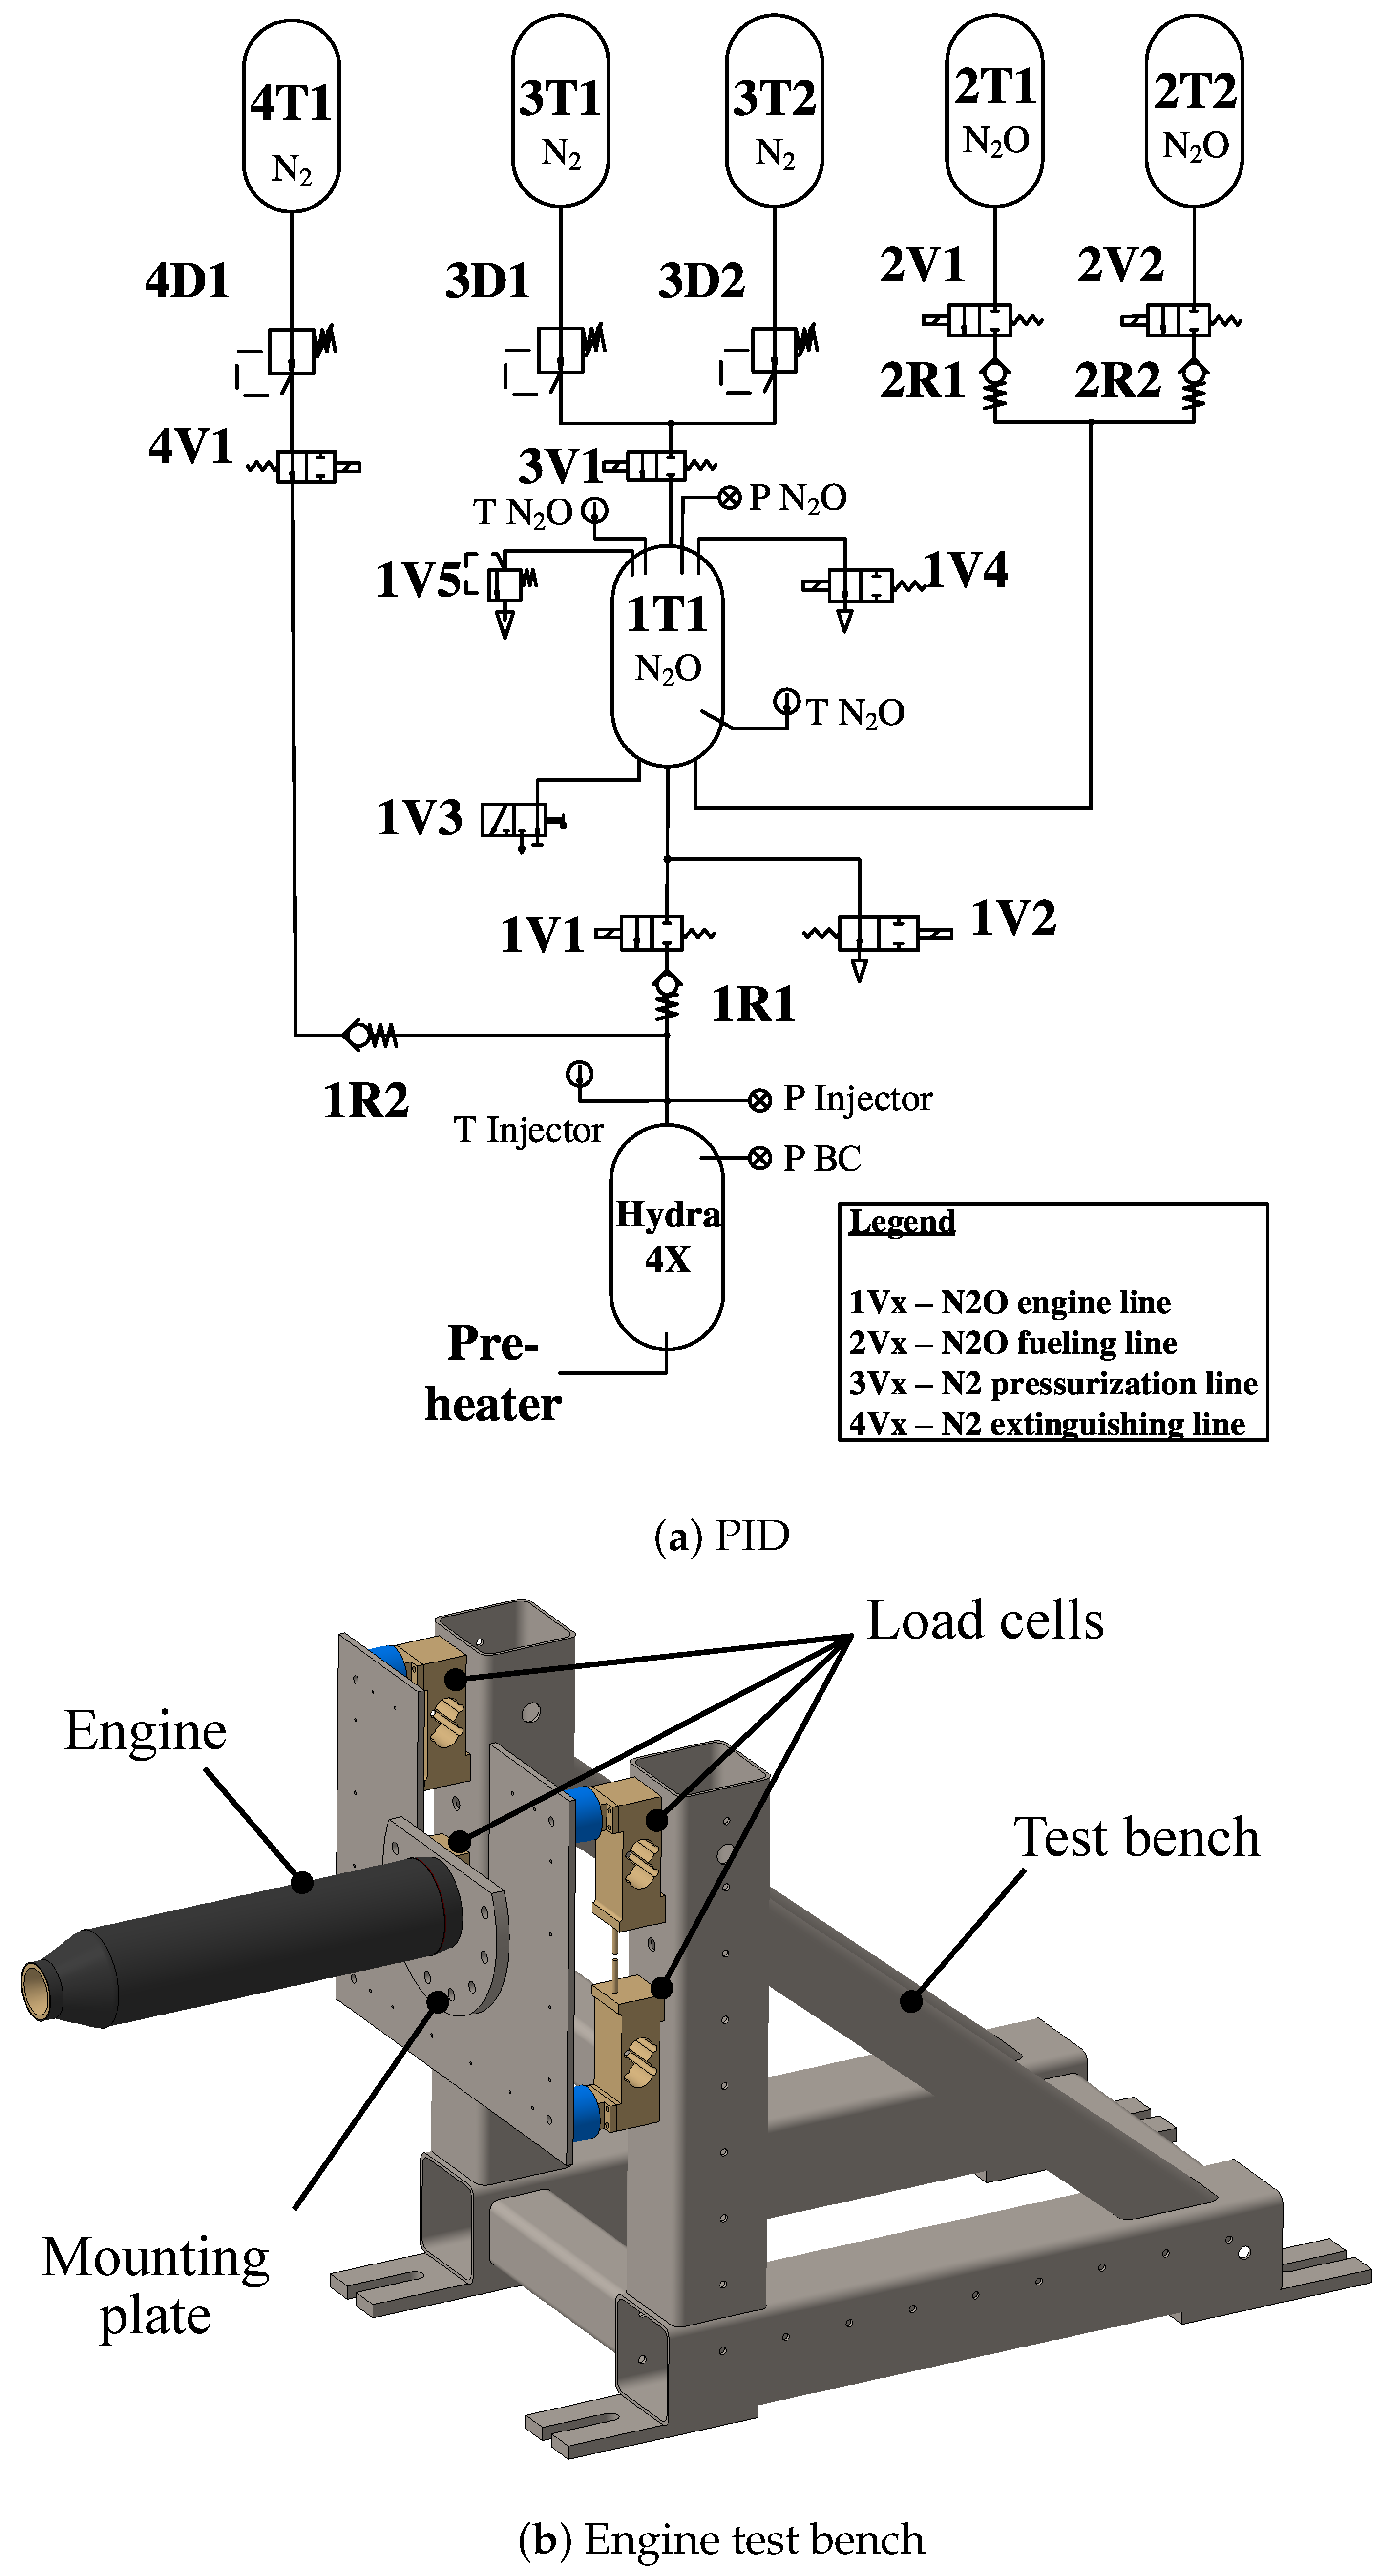 Aerospace | Free Full-Text | Design and Test of a Student Hybrid Rocket  Engine with an External Carbon Fiber Composite Structure | HTML | Hybrid Rocket Engine Diagram |  | MDPI